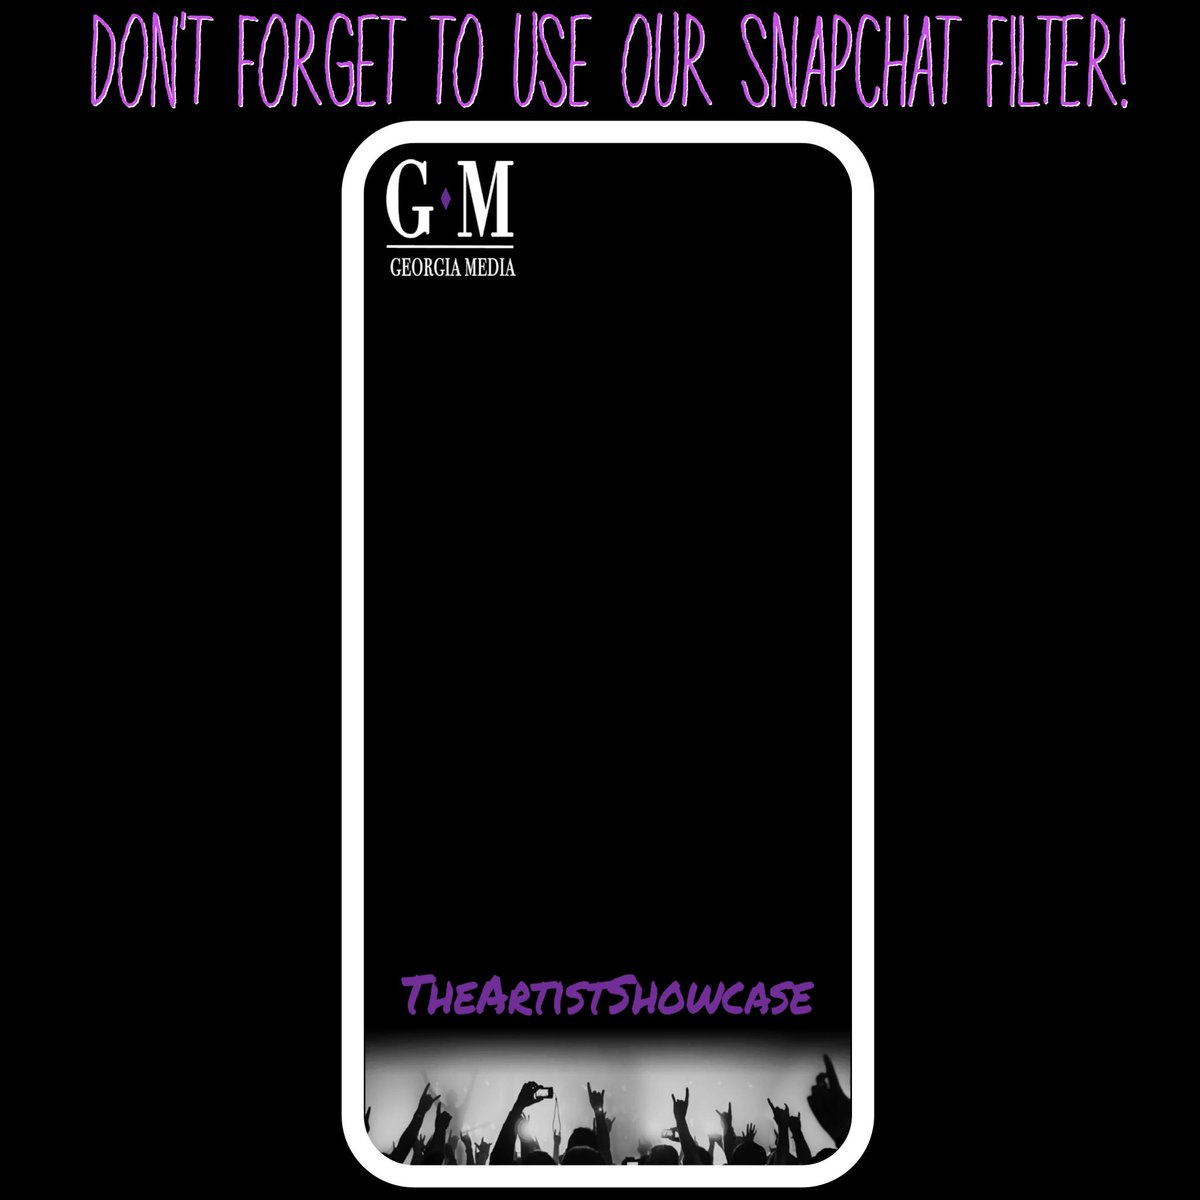 Our filter goes live tomorrow! Don&#39;t forget to use it at #TheArtistShowcase // #GeorgiaMediaAgency #snapchat #geofilter #media<br>http://pic.twitter.com/nuBS0LwYRj